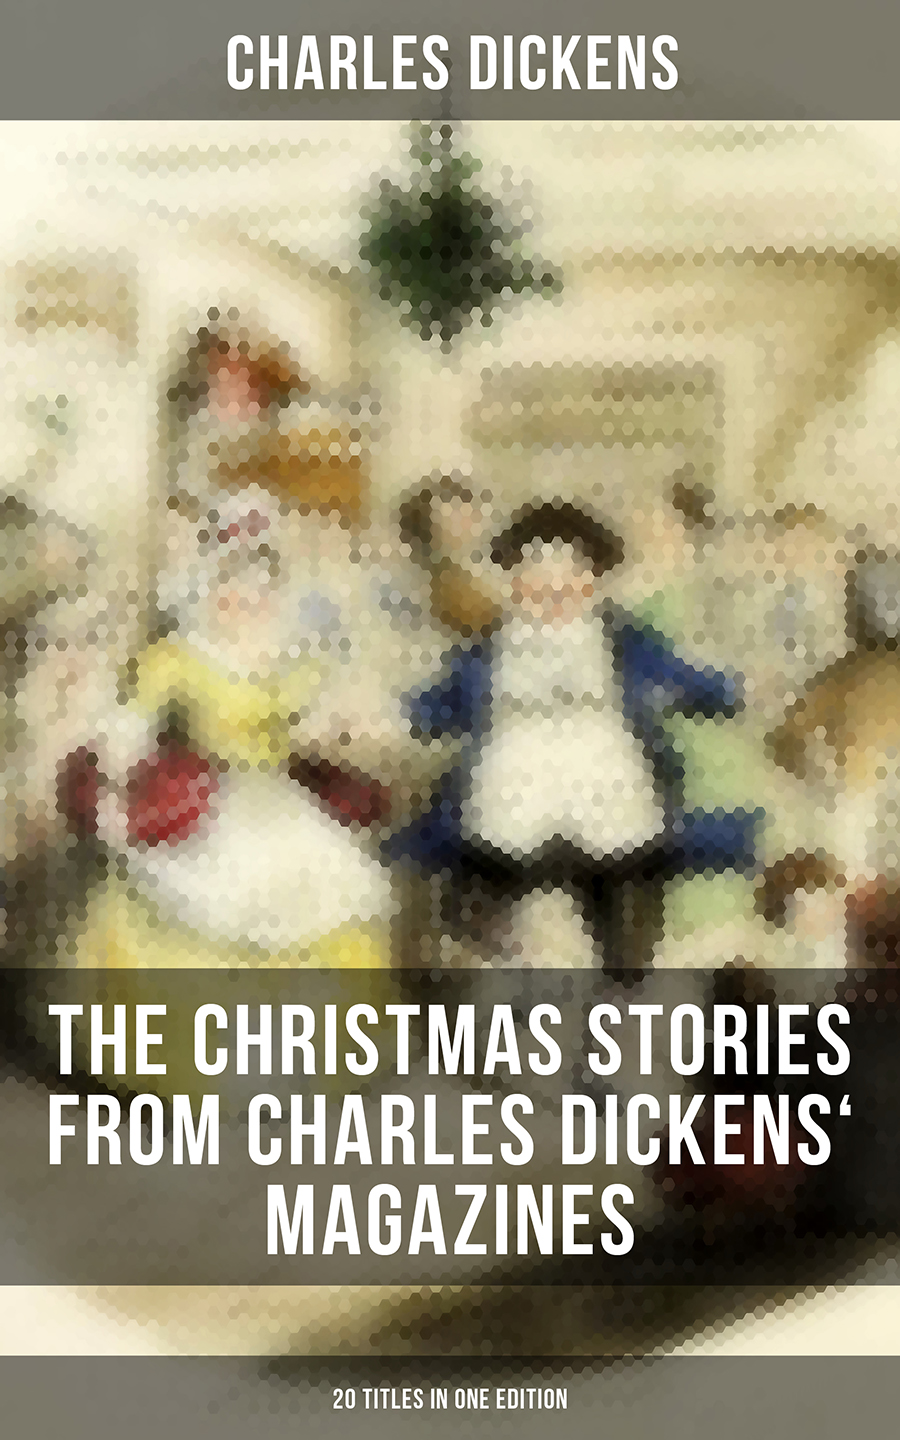 Charles Dickens The Christmas Stories from Charles Dickens' Magazines - 20 Titles in One Edition charles dixon among the birds in northern shires